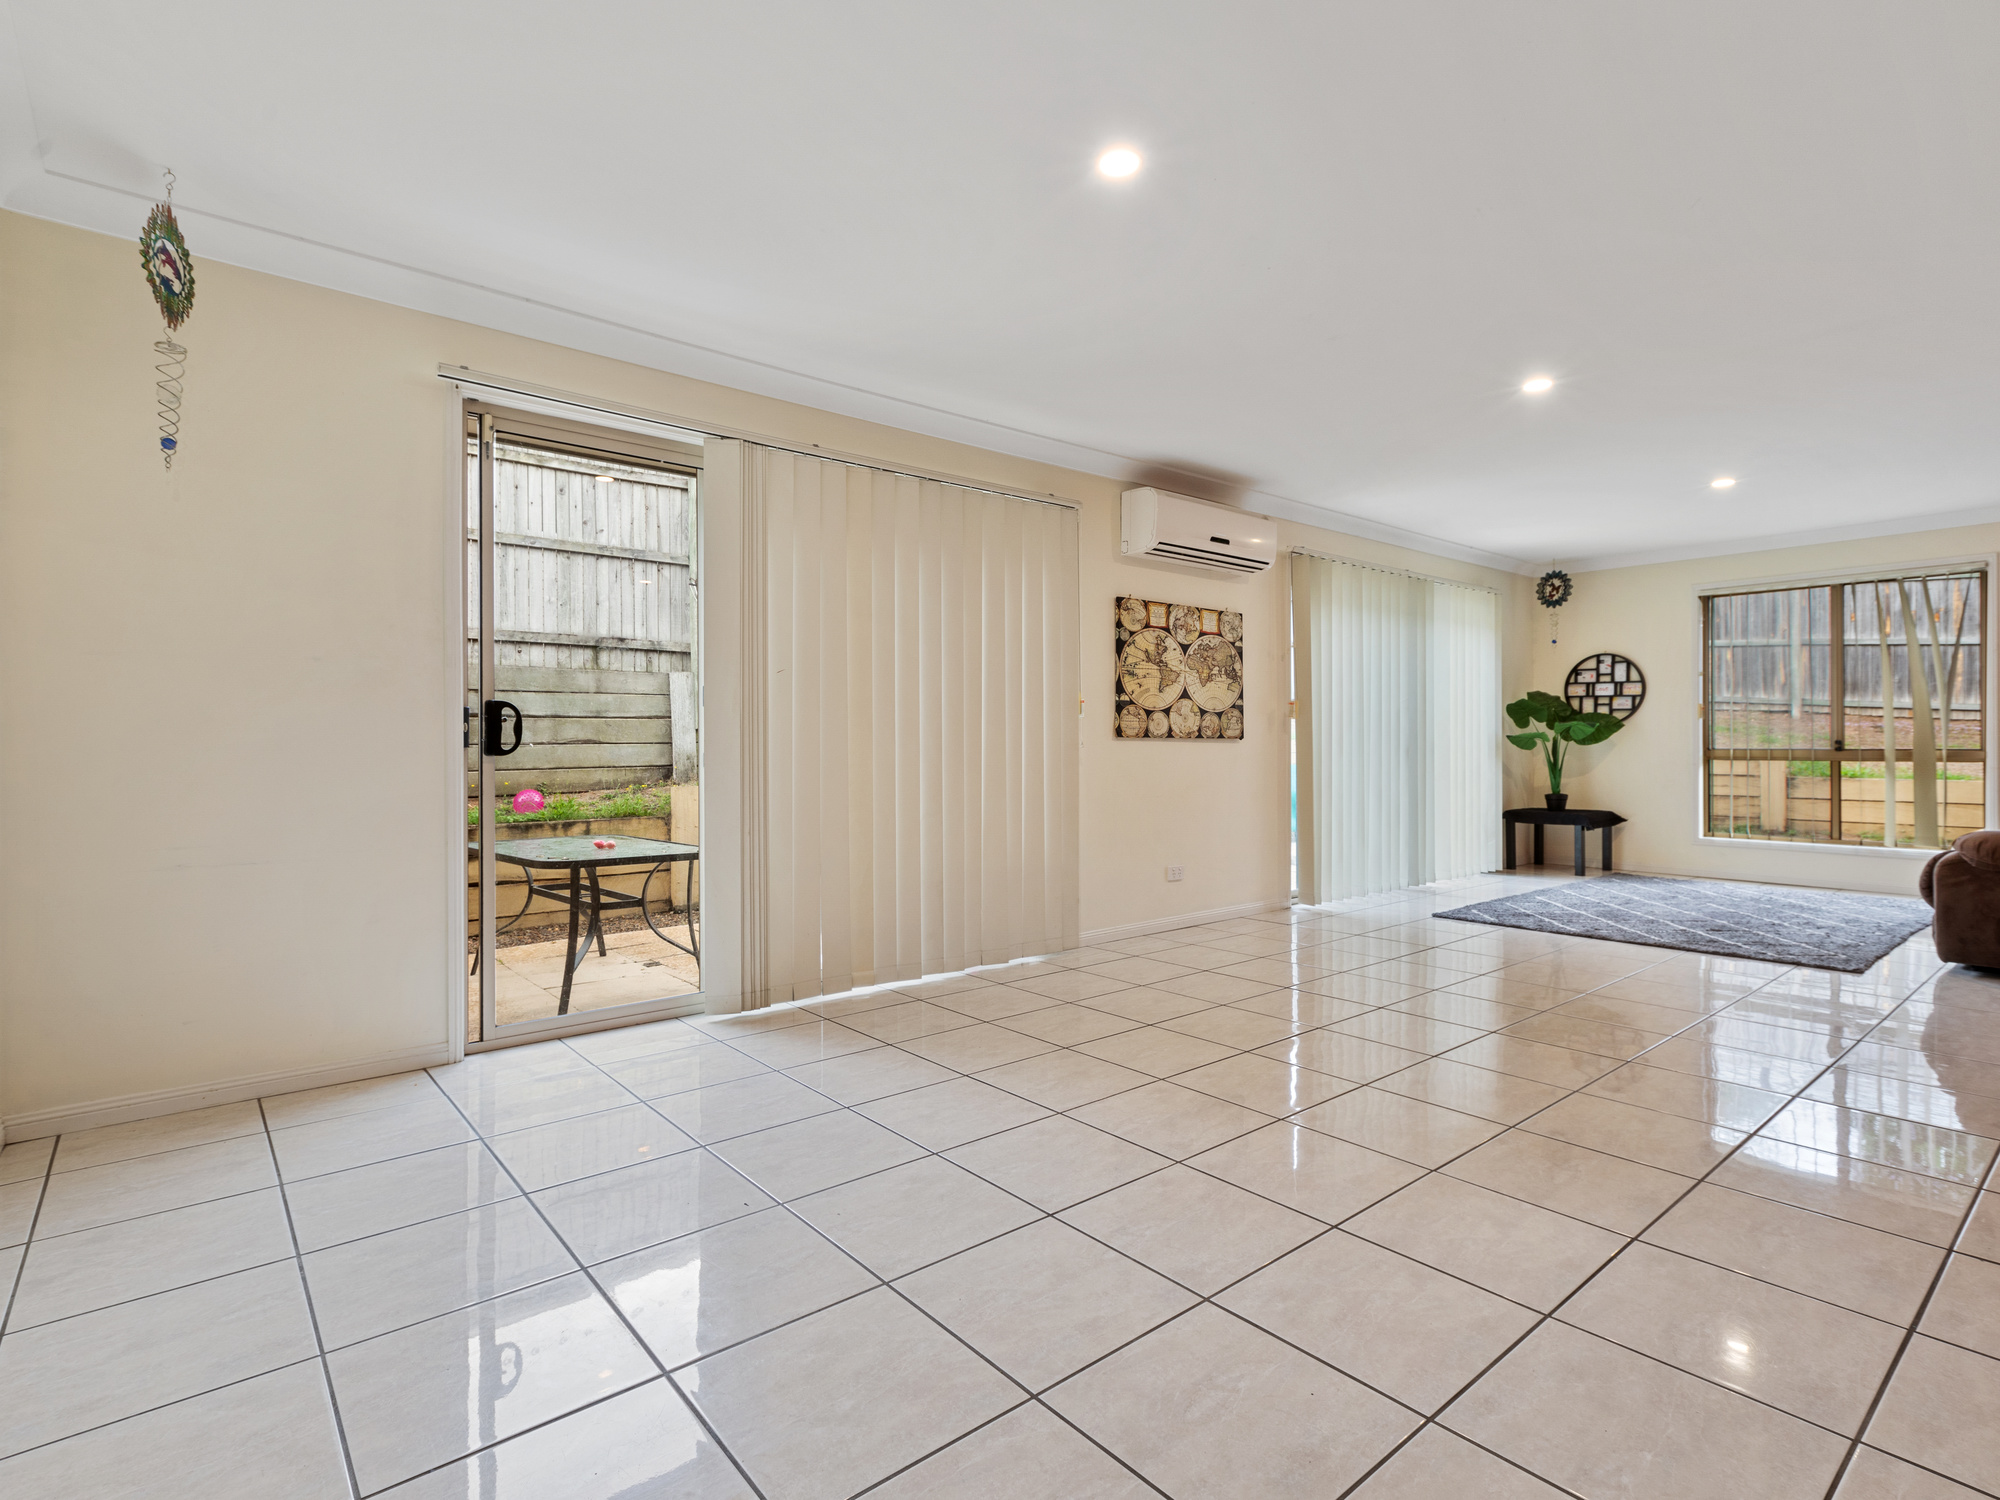 Tiled and open plan